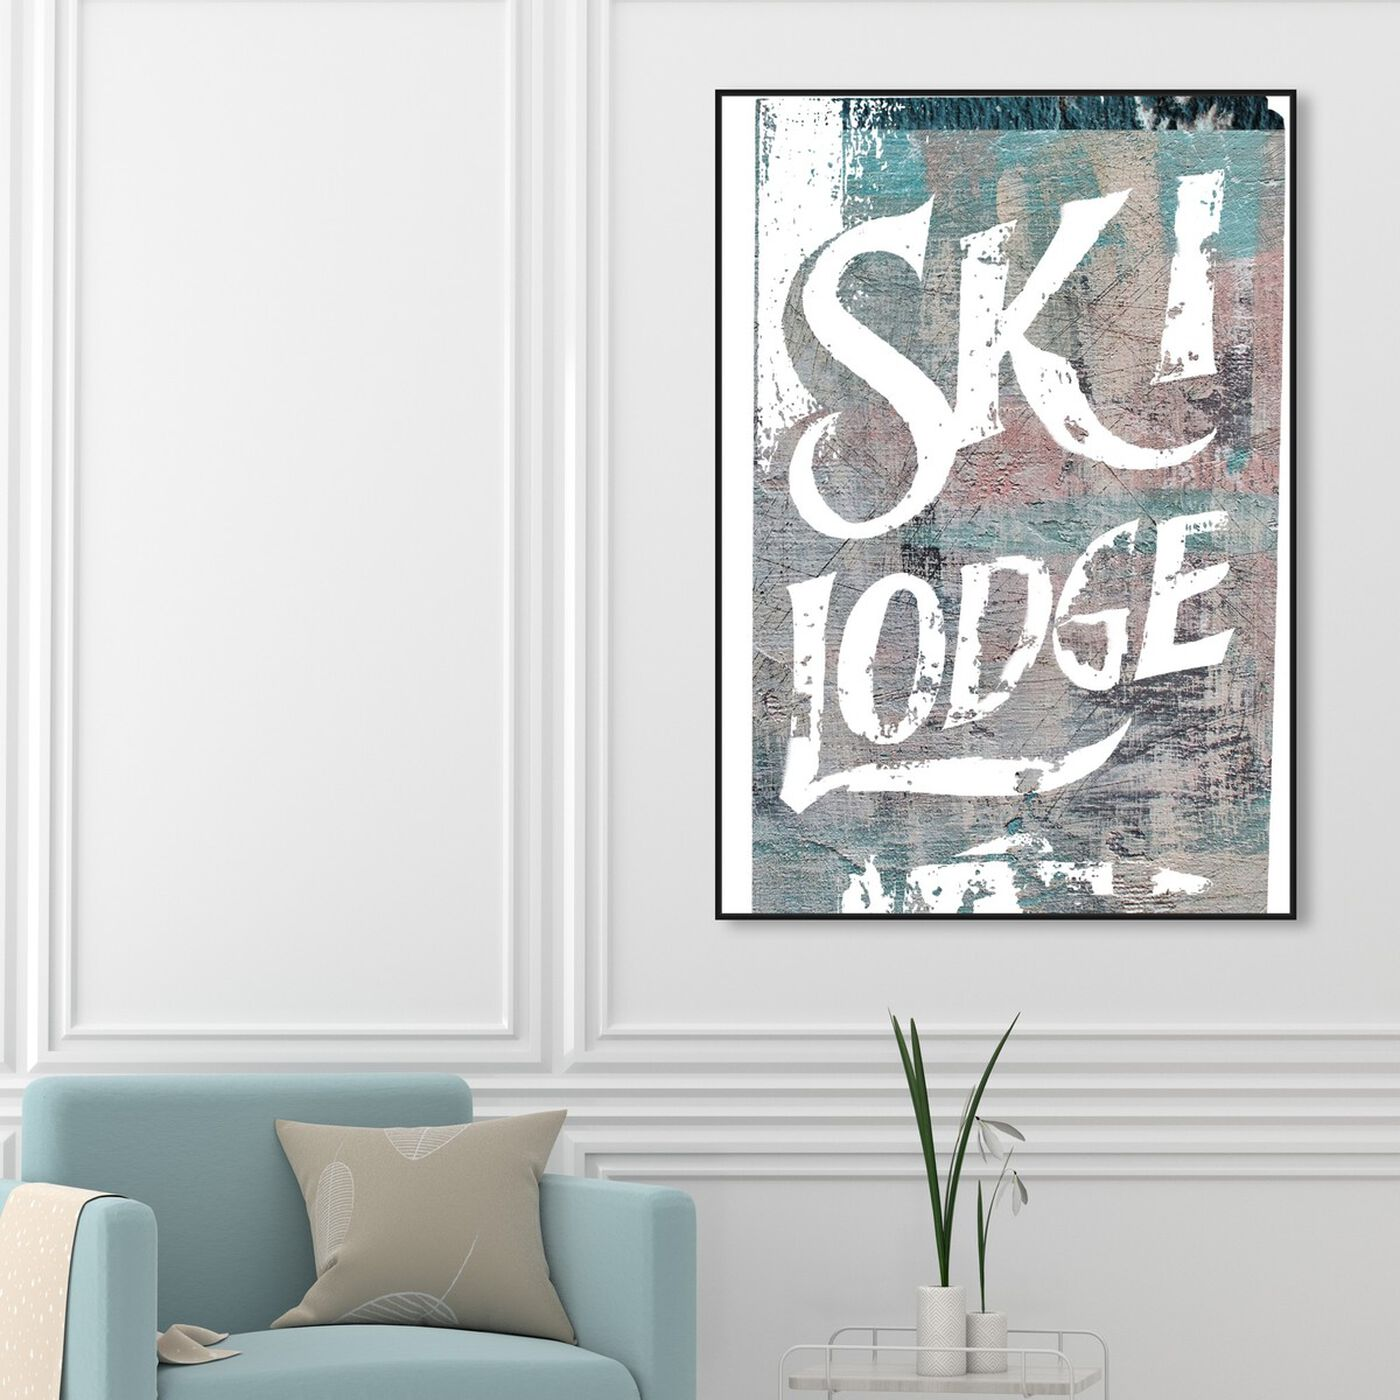 Hanging view of Ski Lodge featuring sports and teams and skiing art.